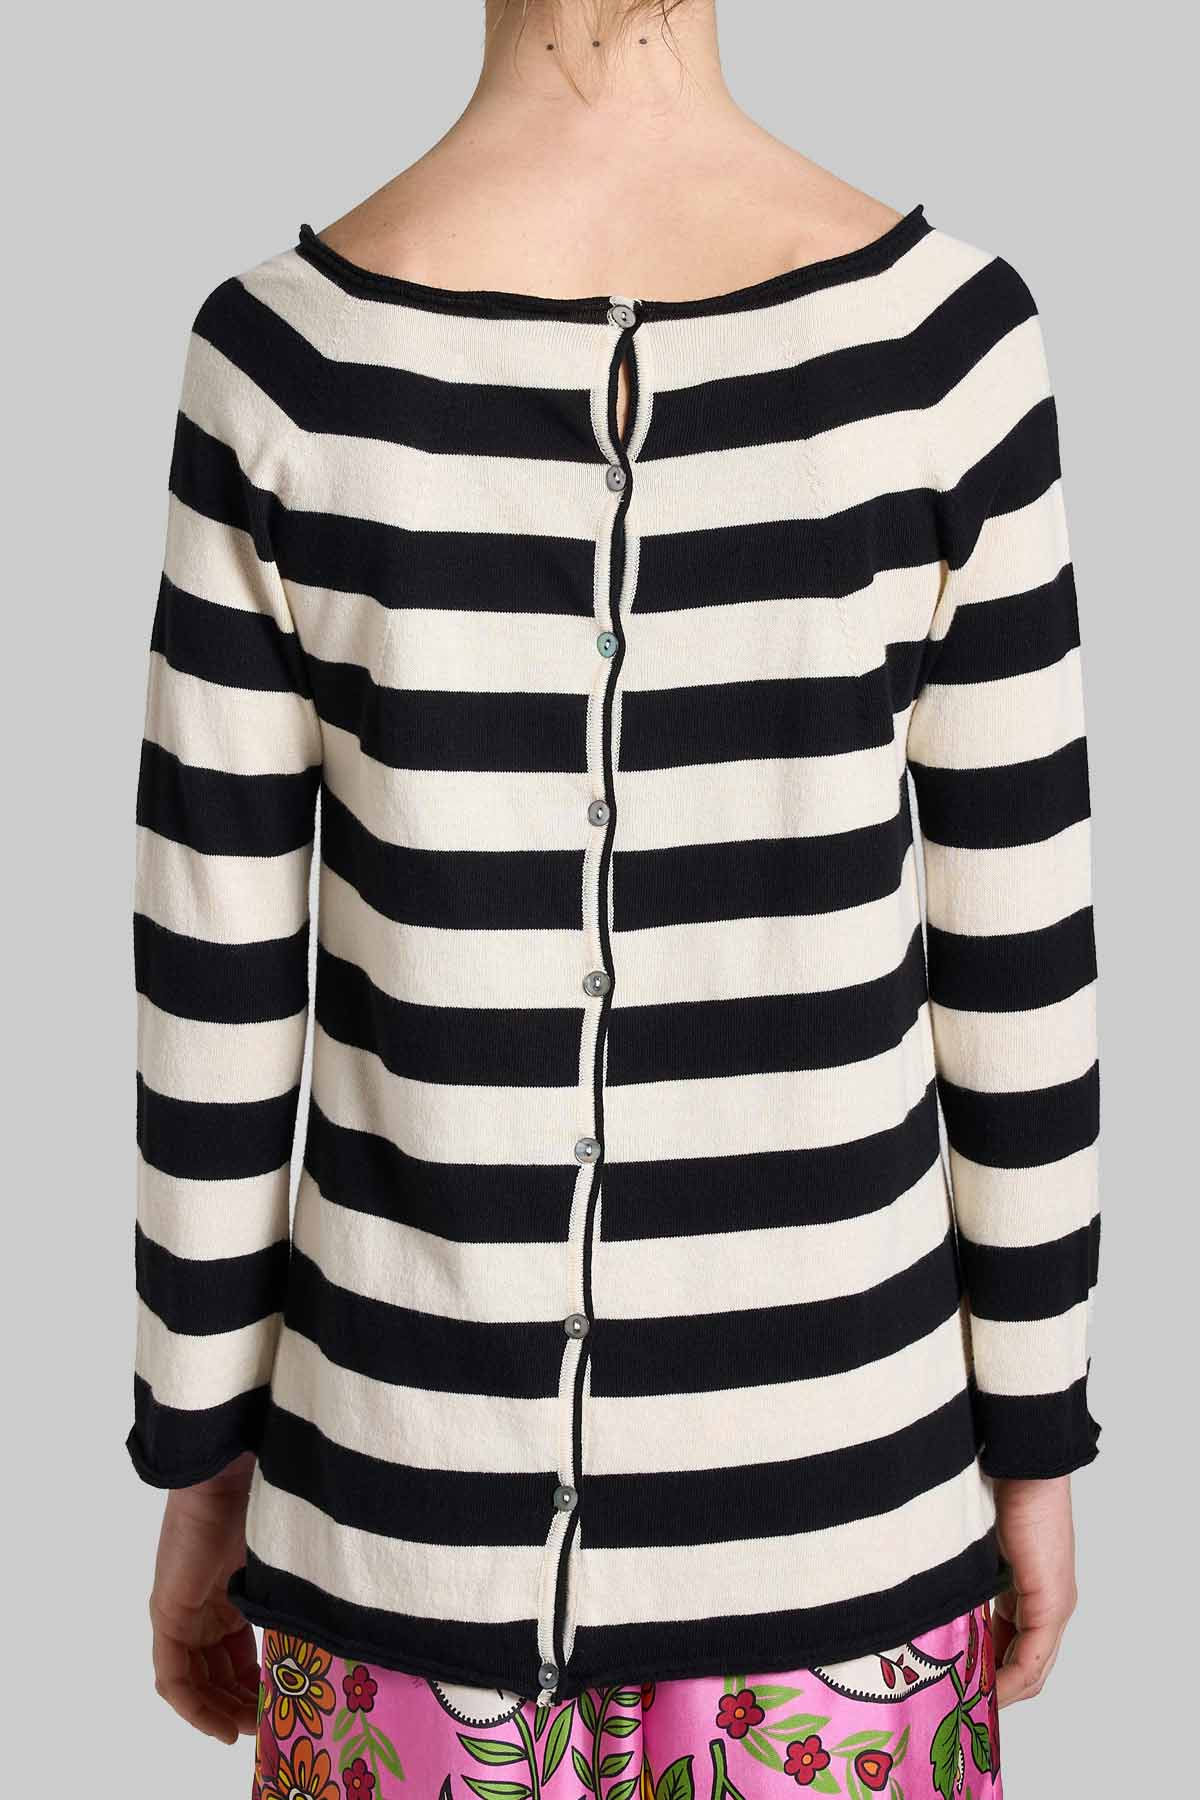 Women's Clothing Sweater Cardigan Bio Cotton with Black and White Stripes Maliparmi | Knitwear | JN35707050020B10